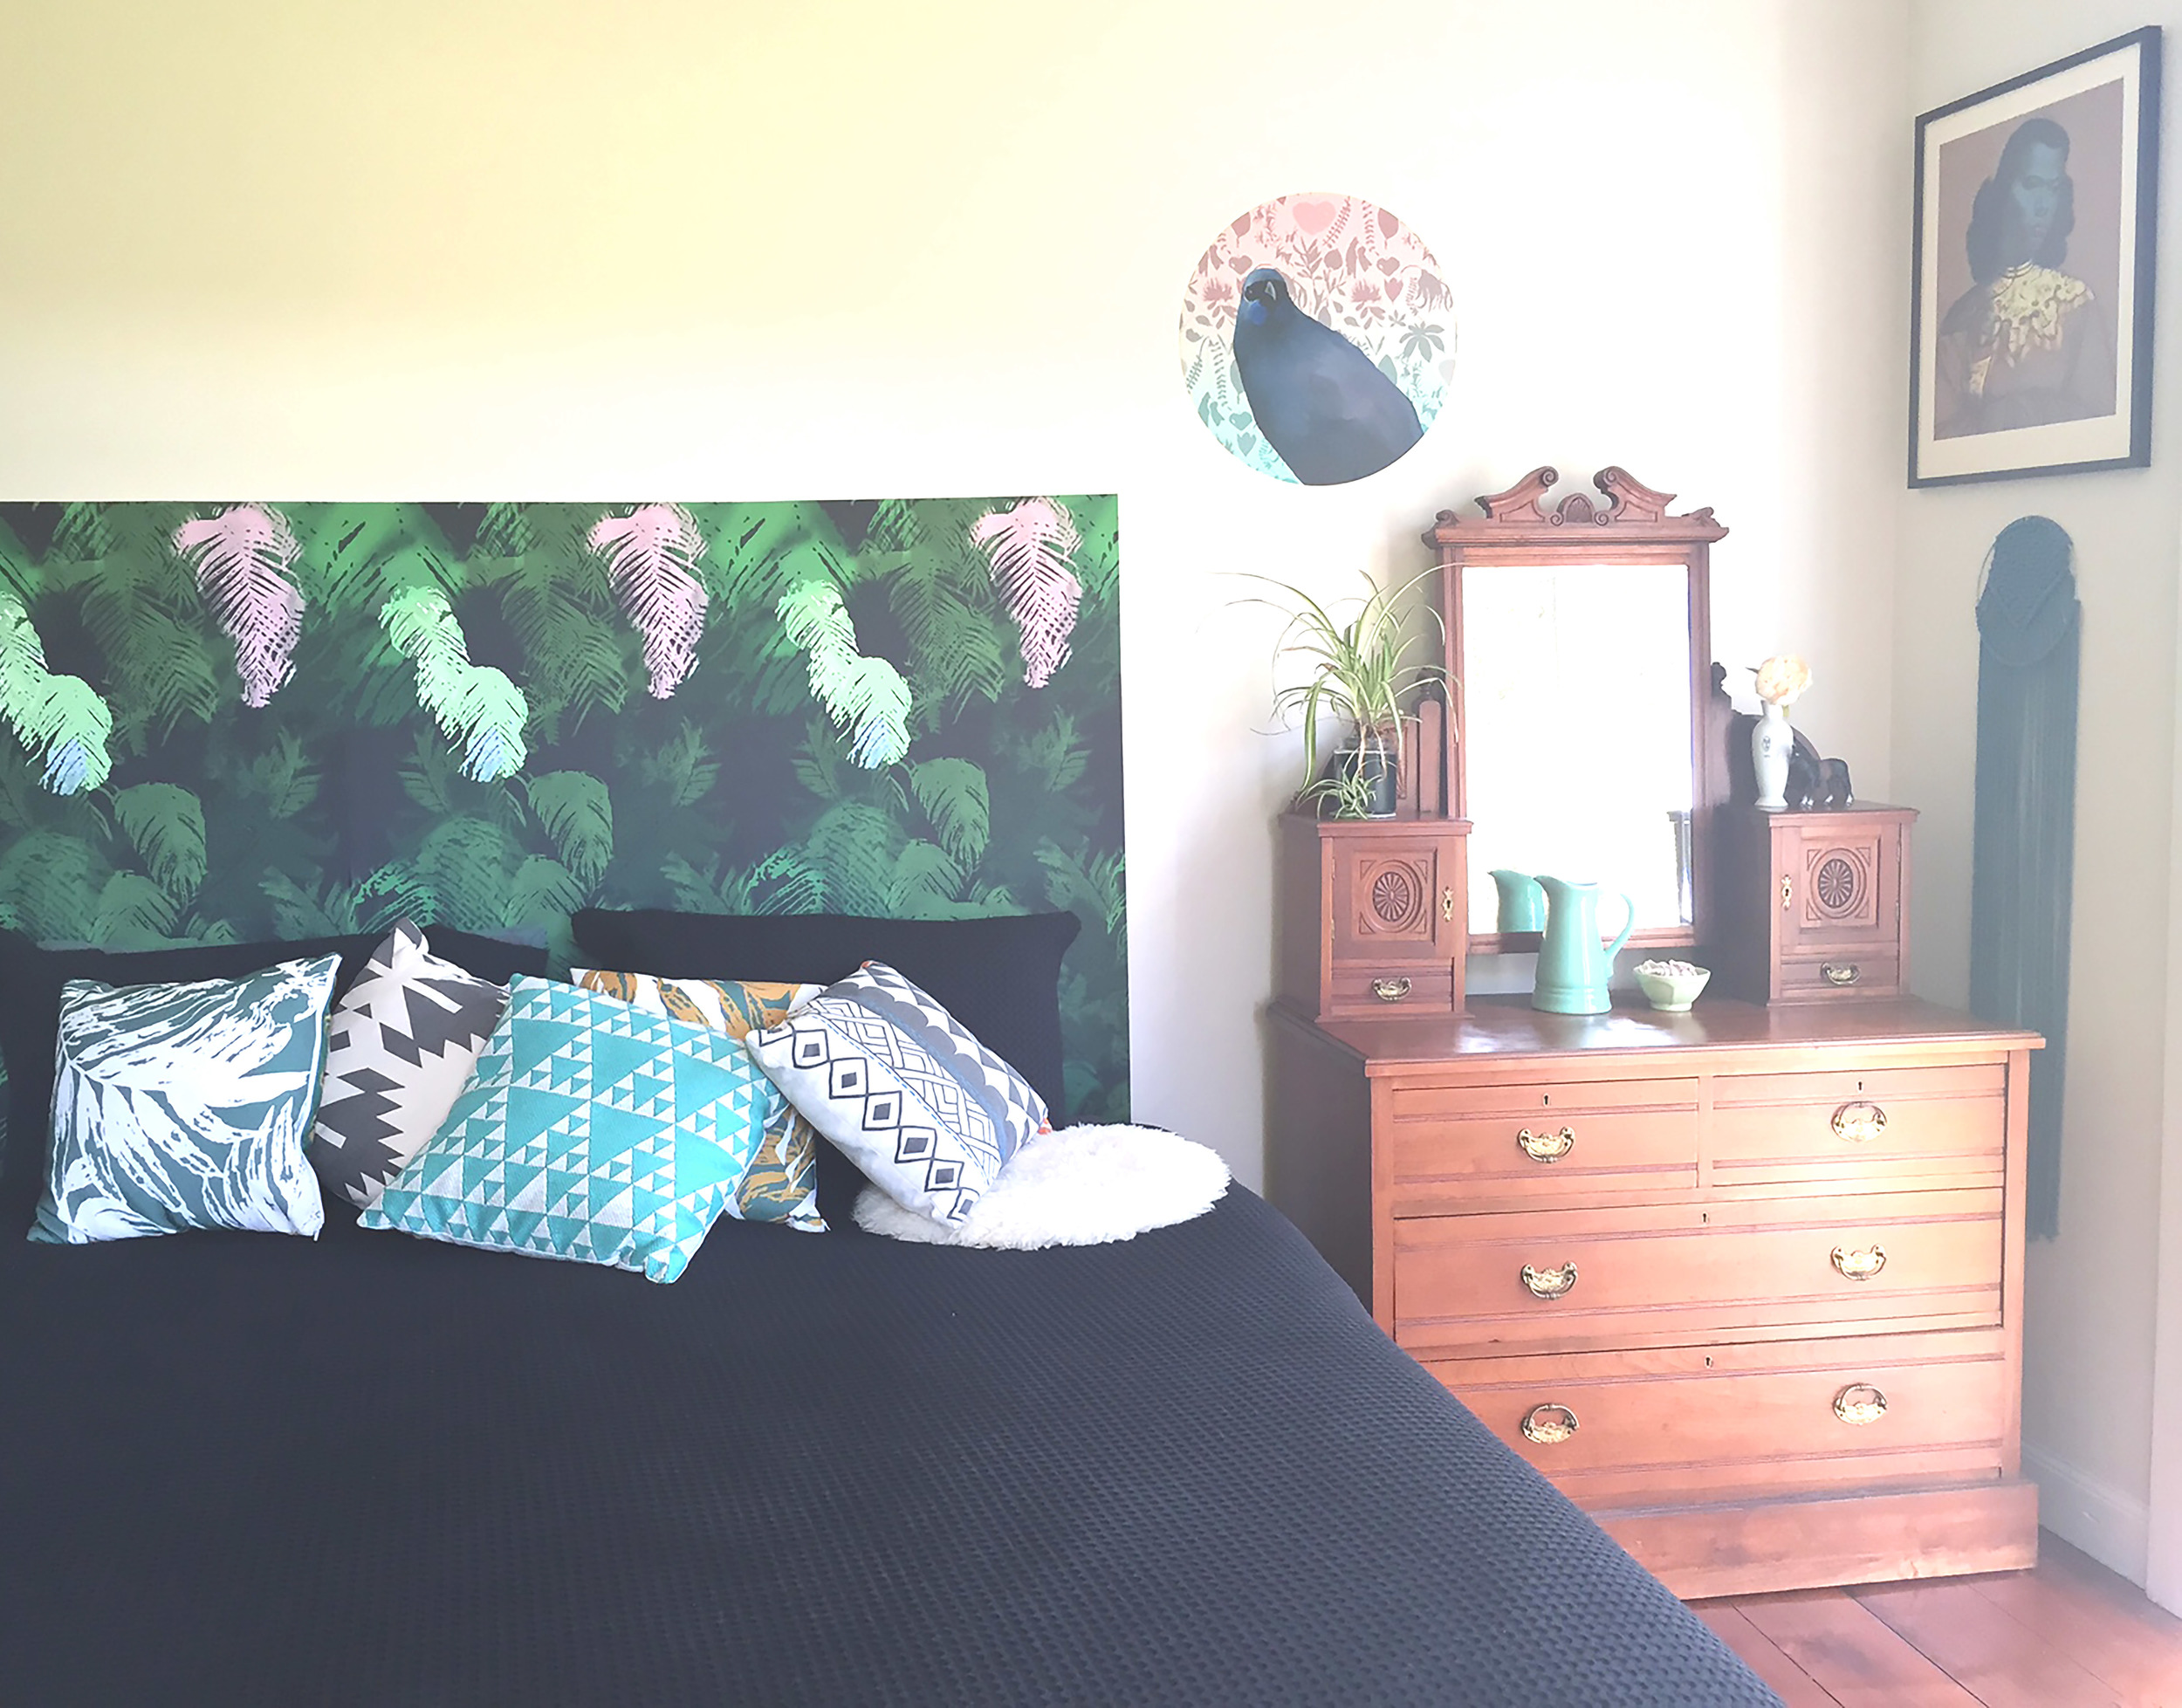 This is my nz ferns wallpaper used as a headboard on a Super King bed.